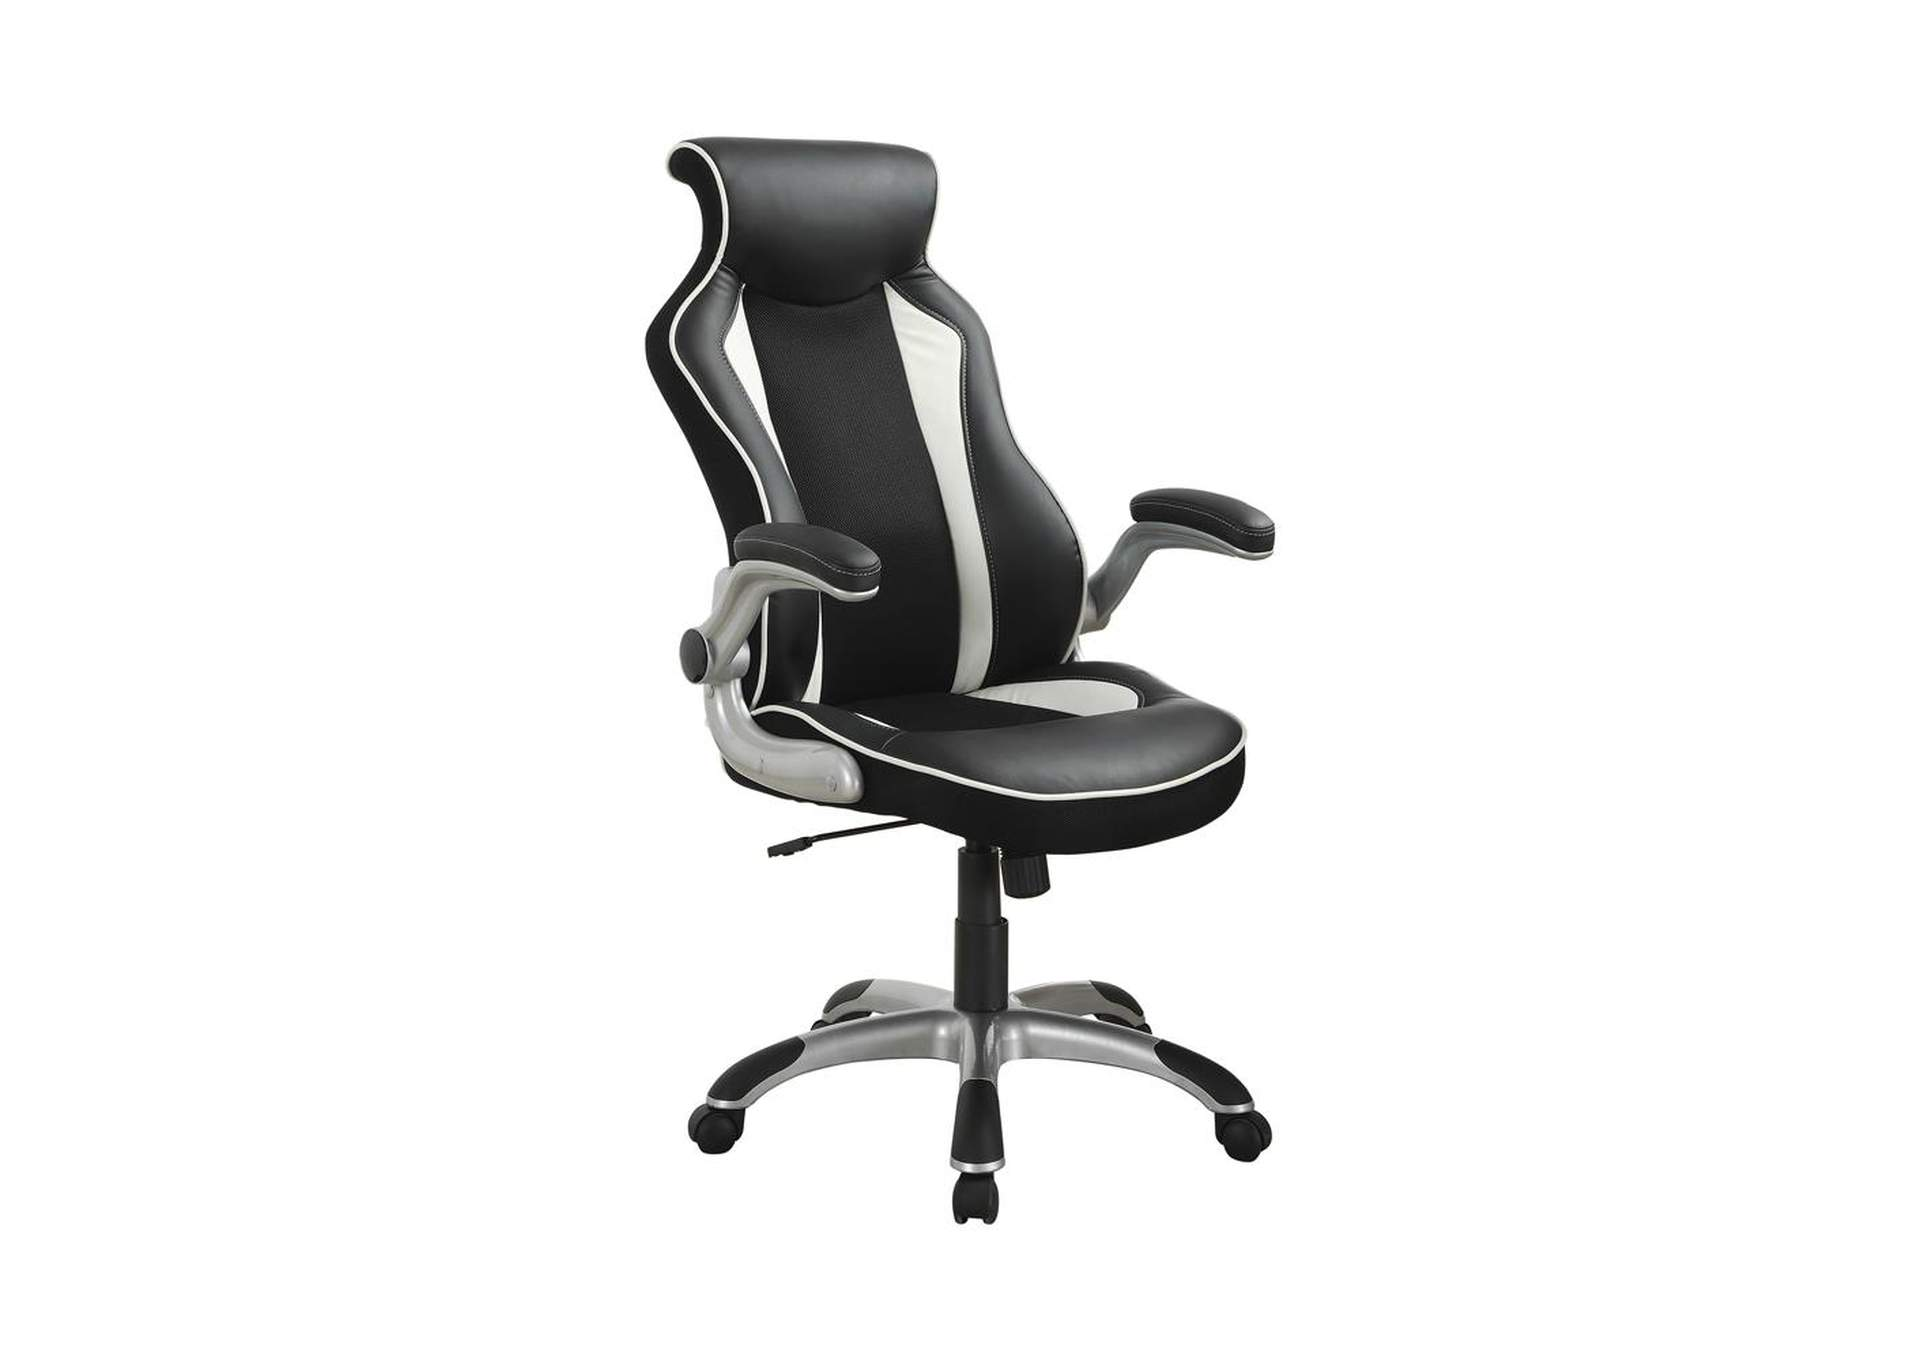 Silver Contemporary Black and White Office Chair,Coaster Furniture